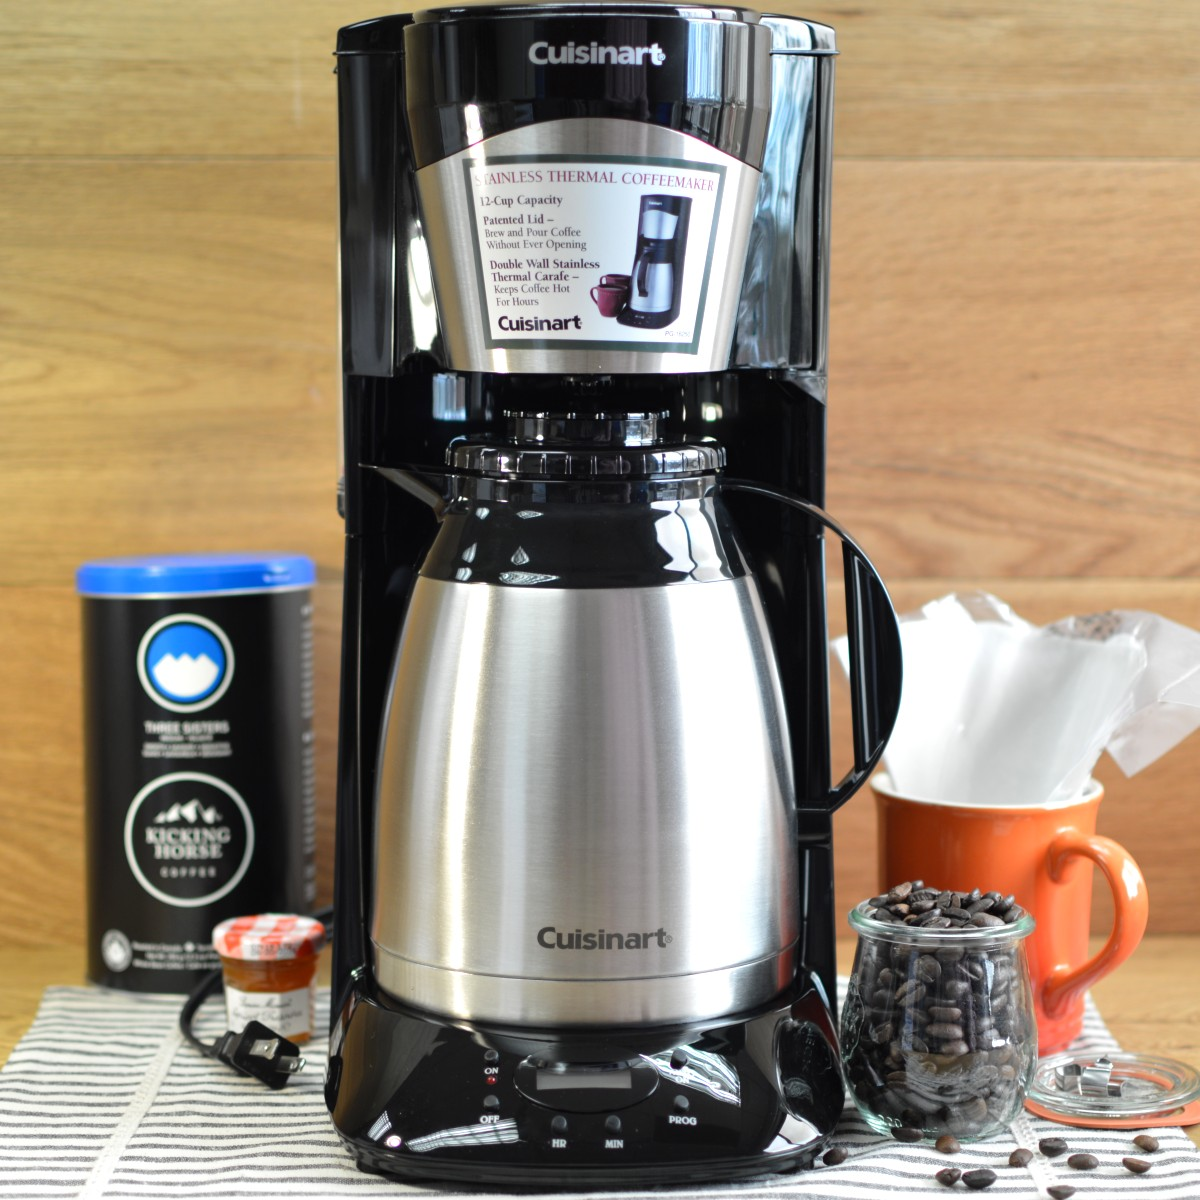 Cuisinart Coffee Maker Not Staying On : Cuisinart coffee maker review: Great, but not for everyone